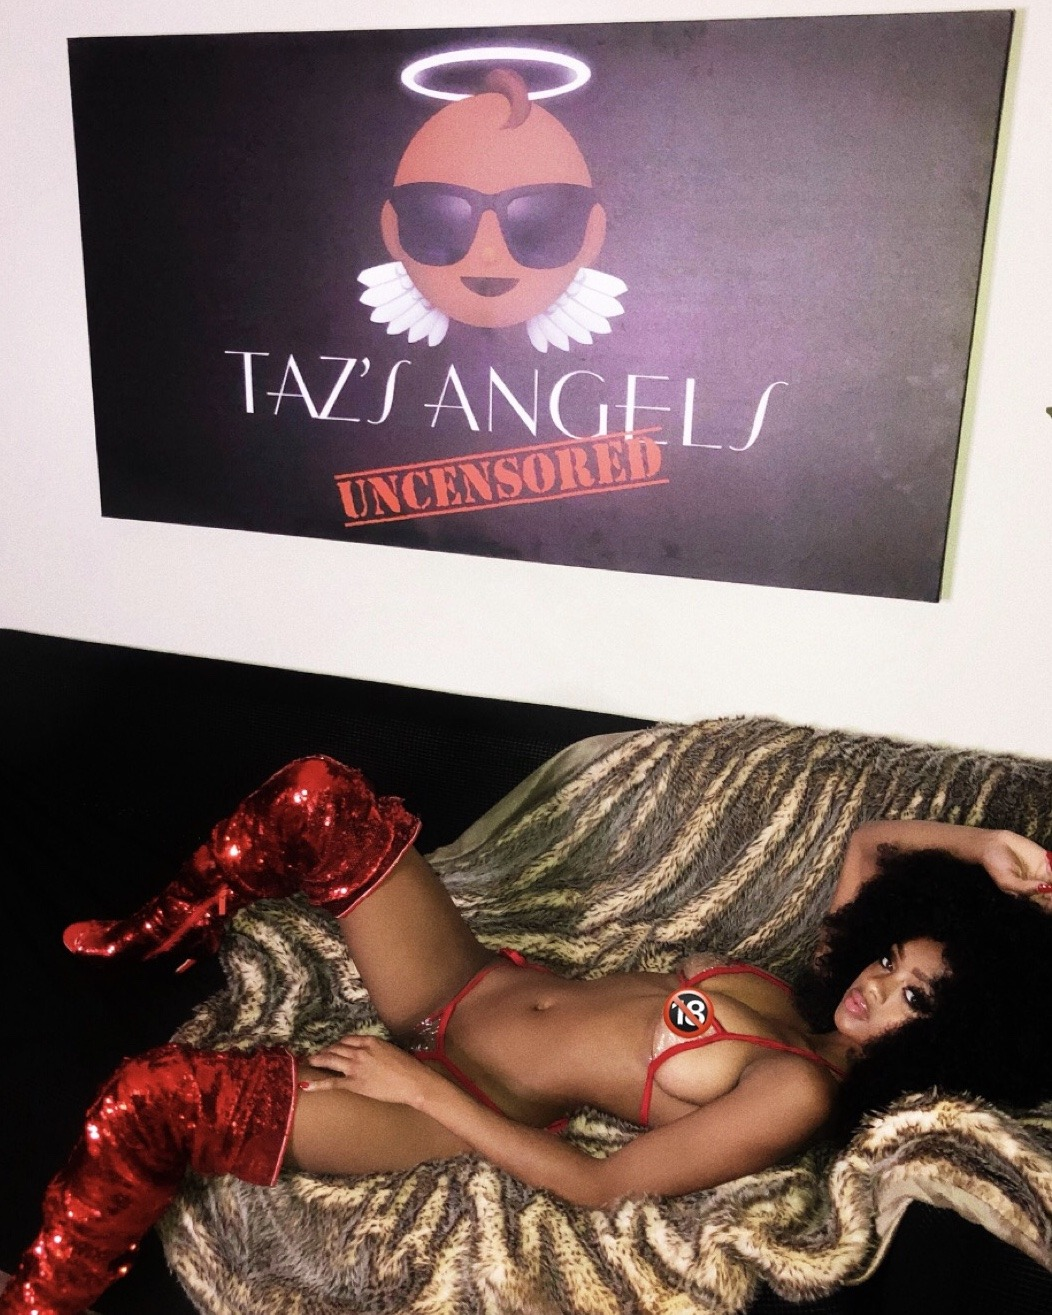 Taz's Angels Uncensored - profile image - 4